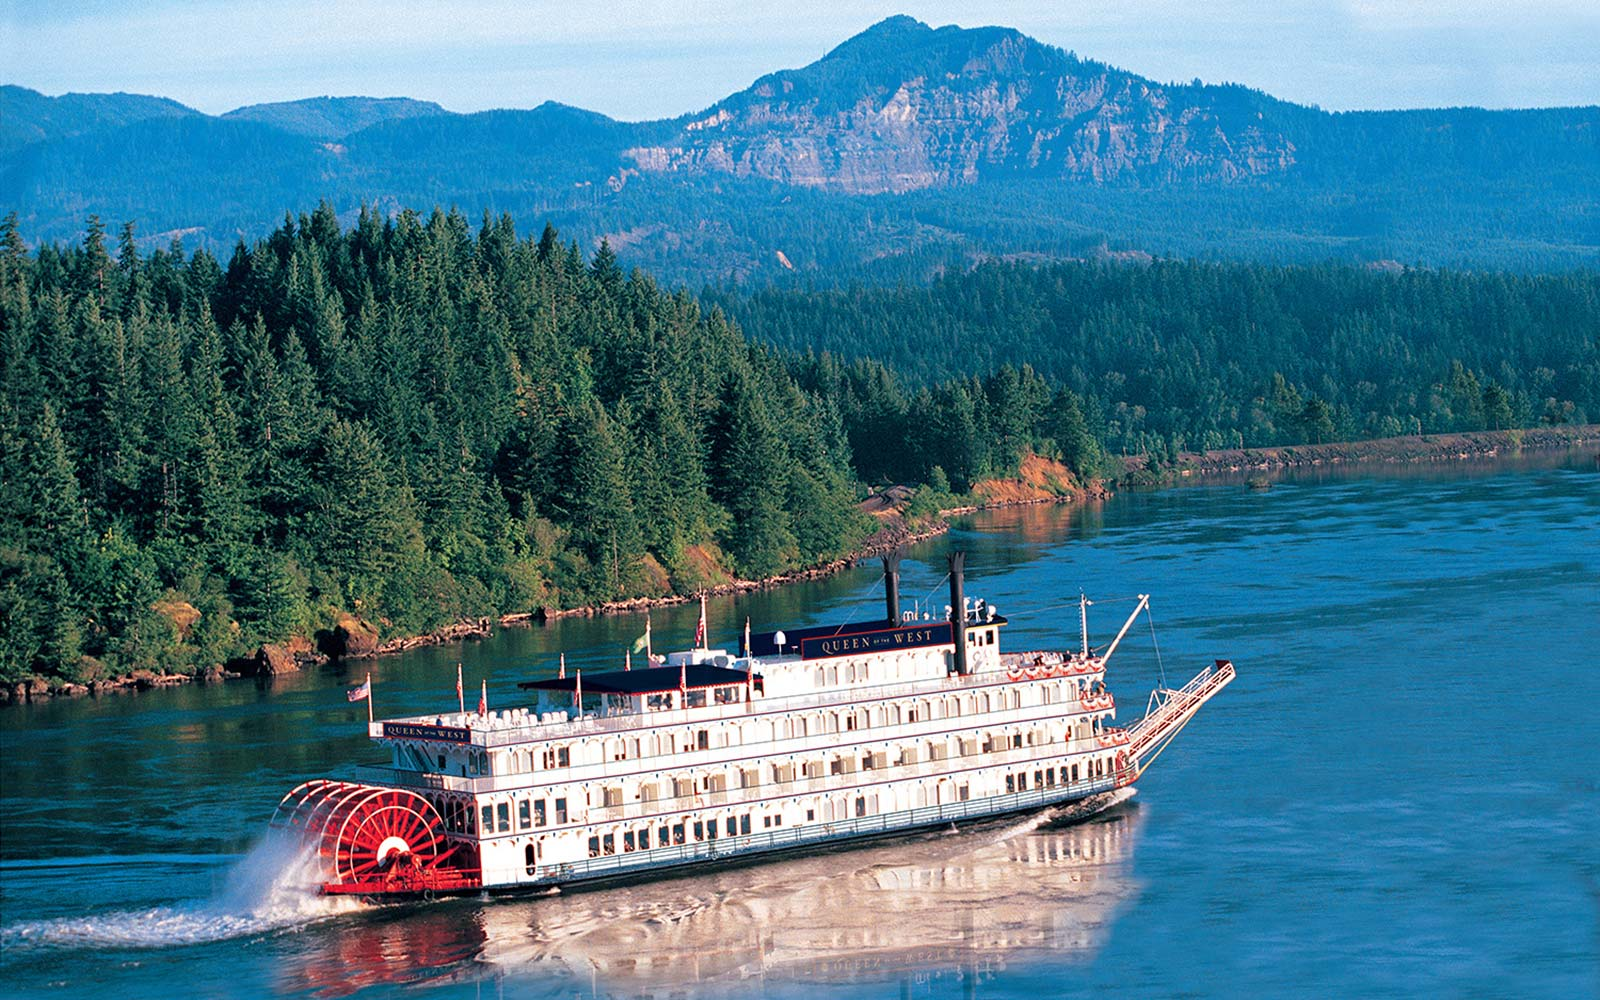 American Cruise Line's Queen of the West